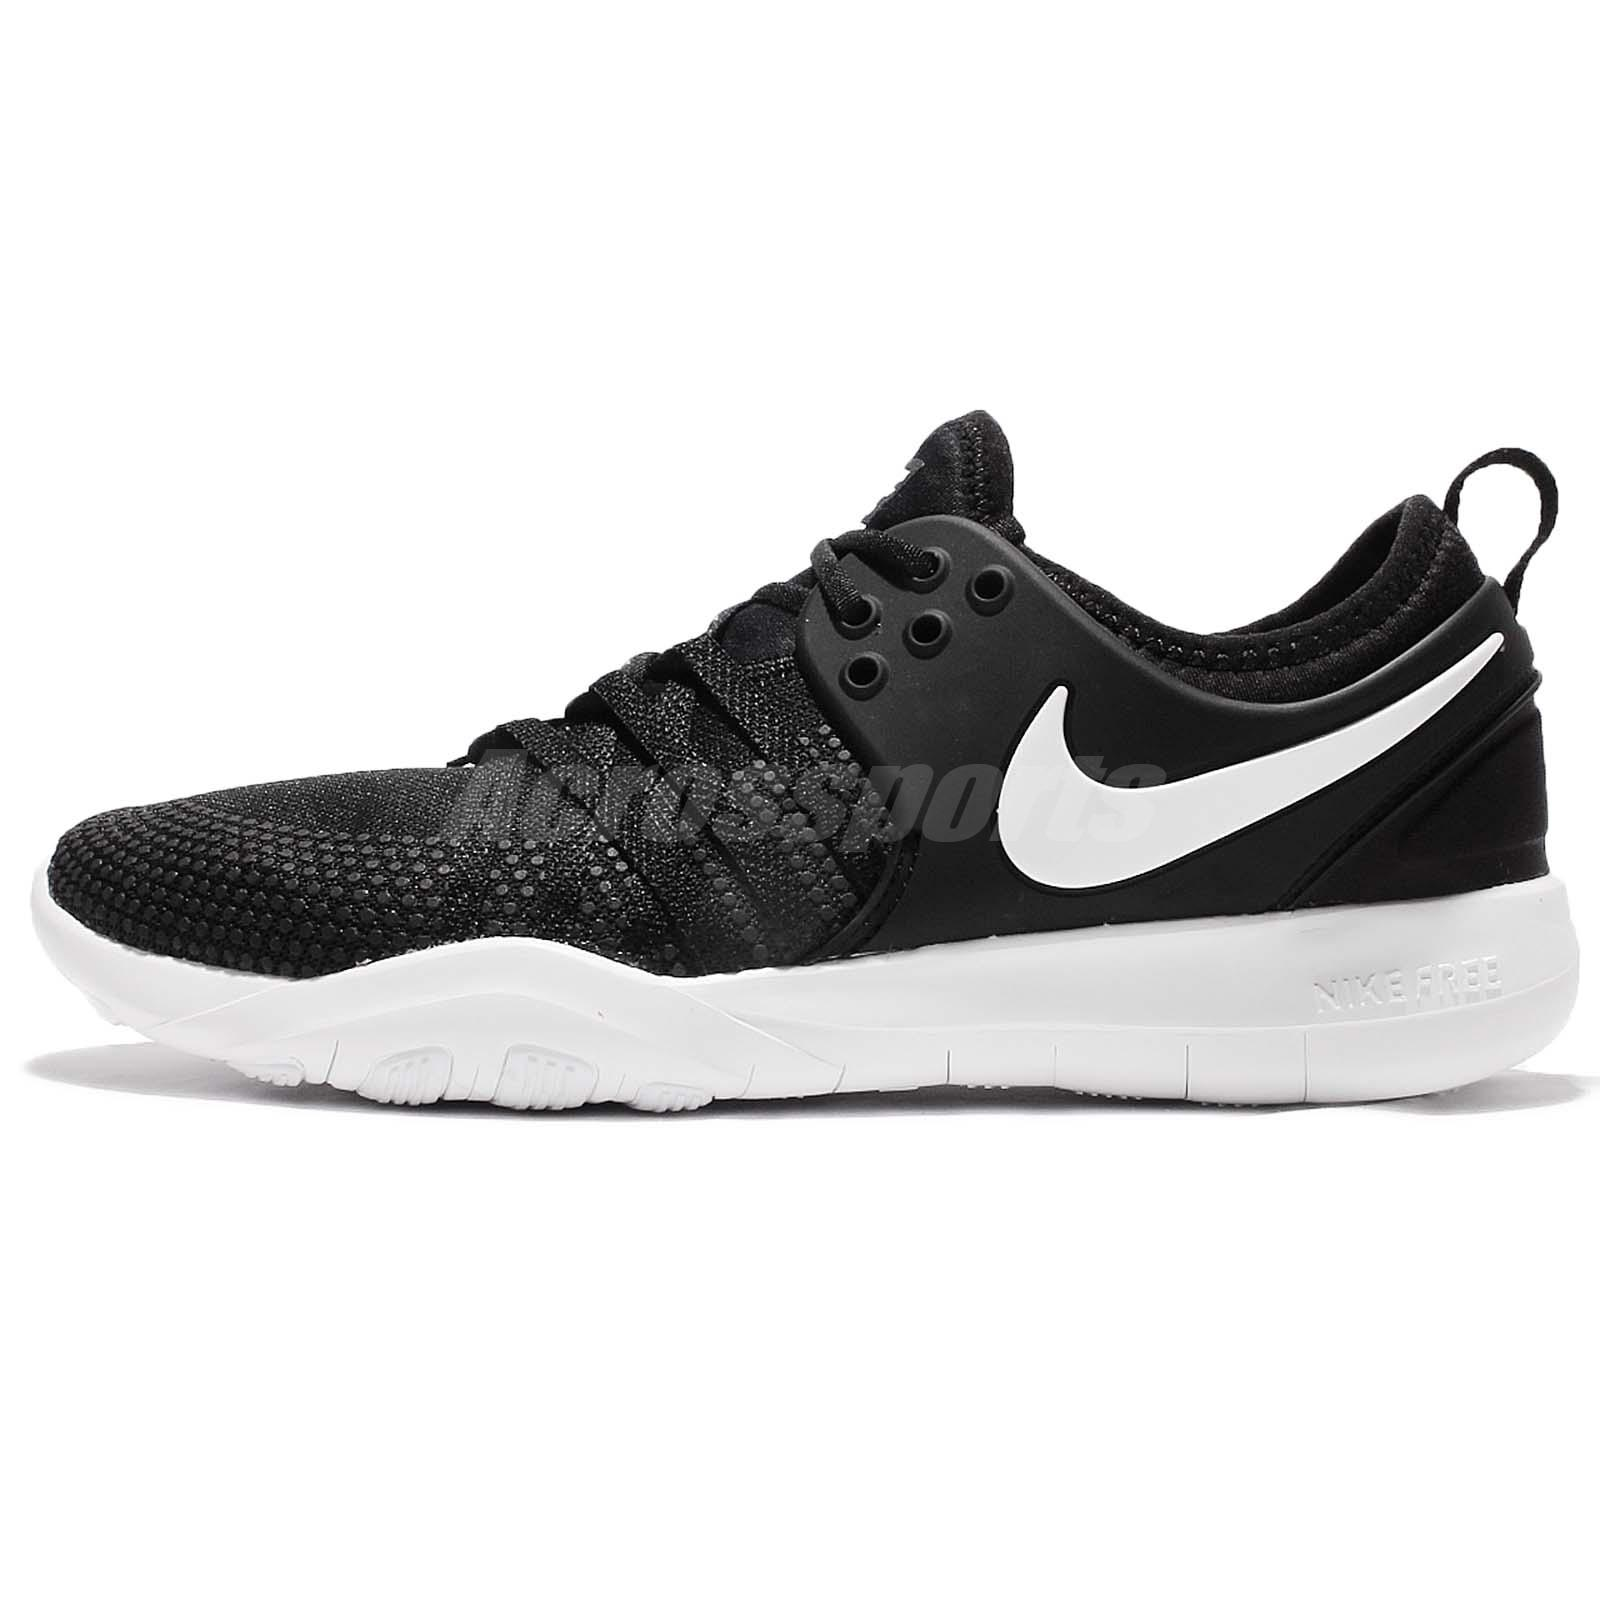 Wmns Nike Free TR 7 VII Black White Women Training Shoes Gym Trainers  904651-001 b56e92717